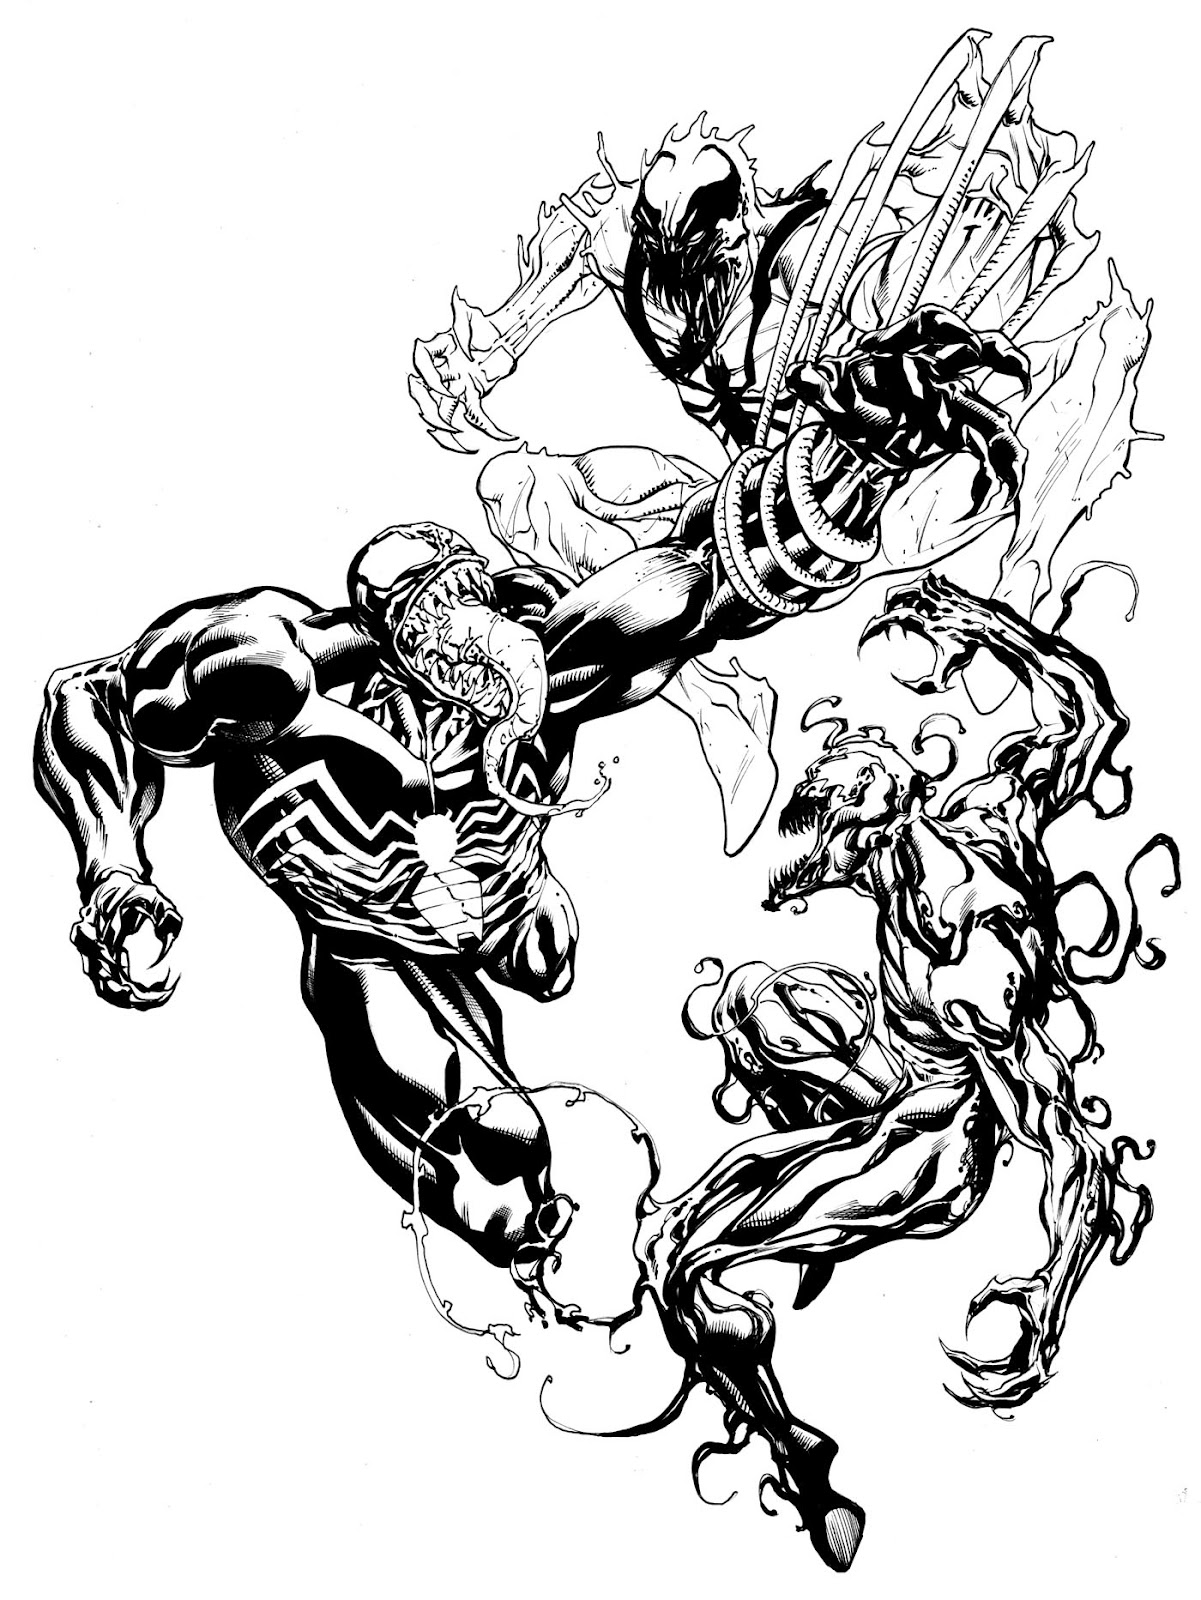 1201x1600 He's Like Venom But Not. Robert Atkins Art